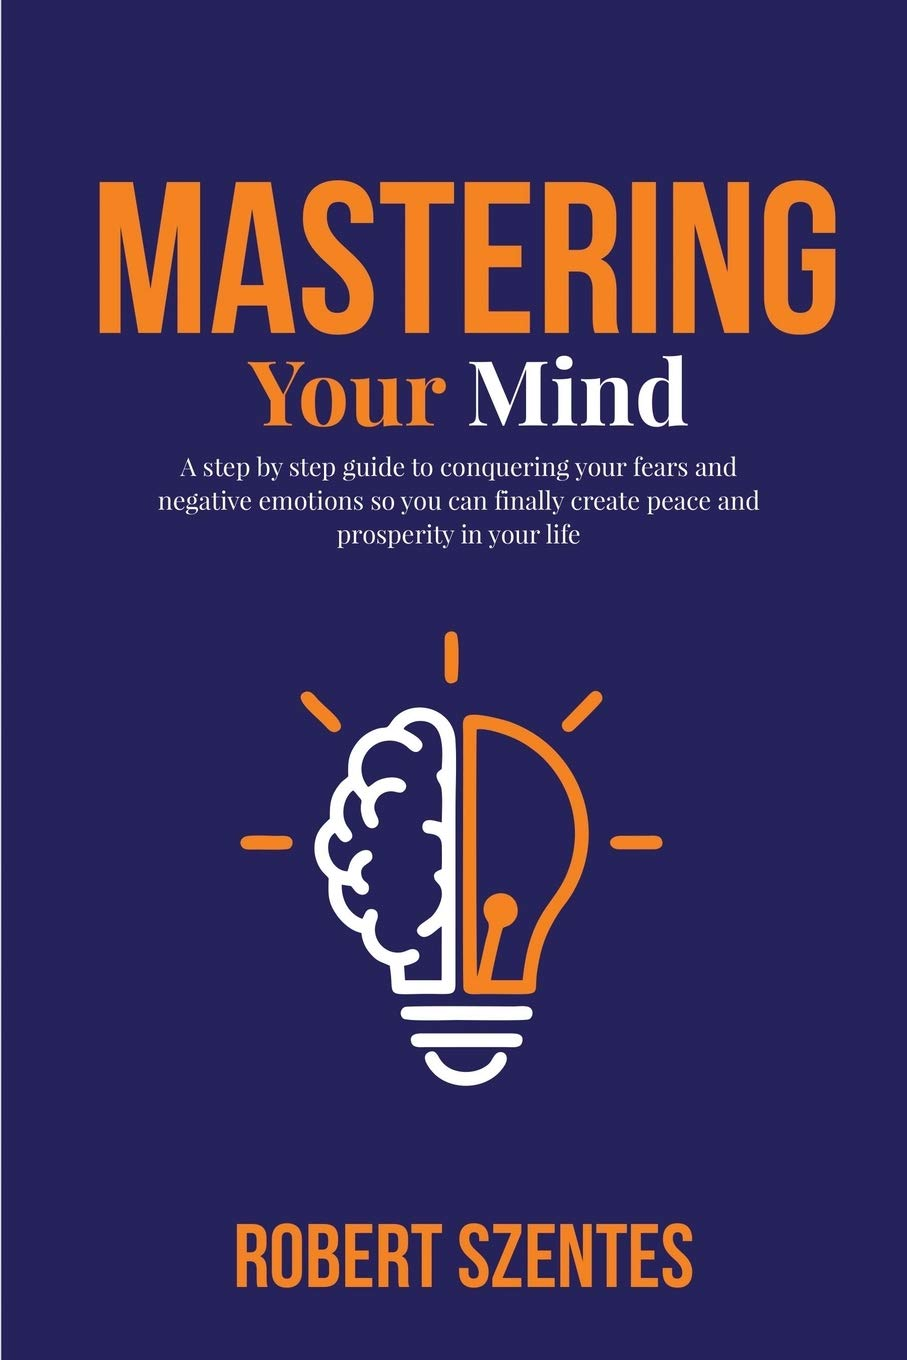 Mastering Your Mind: A step by step guide to conquering your fears and negative emotions so you can finally create peace and prosperity in your life